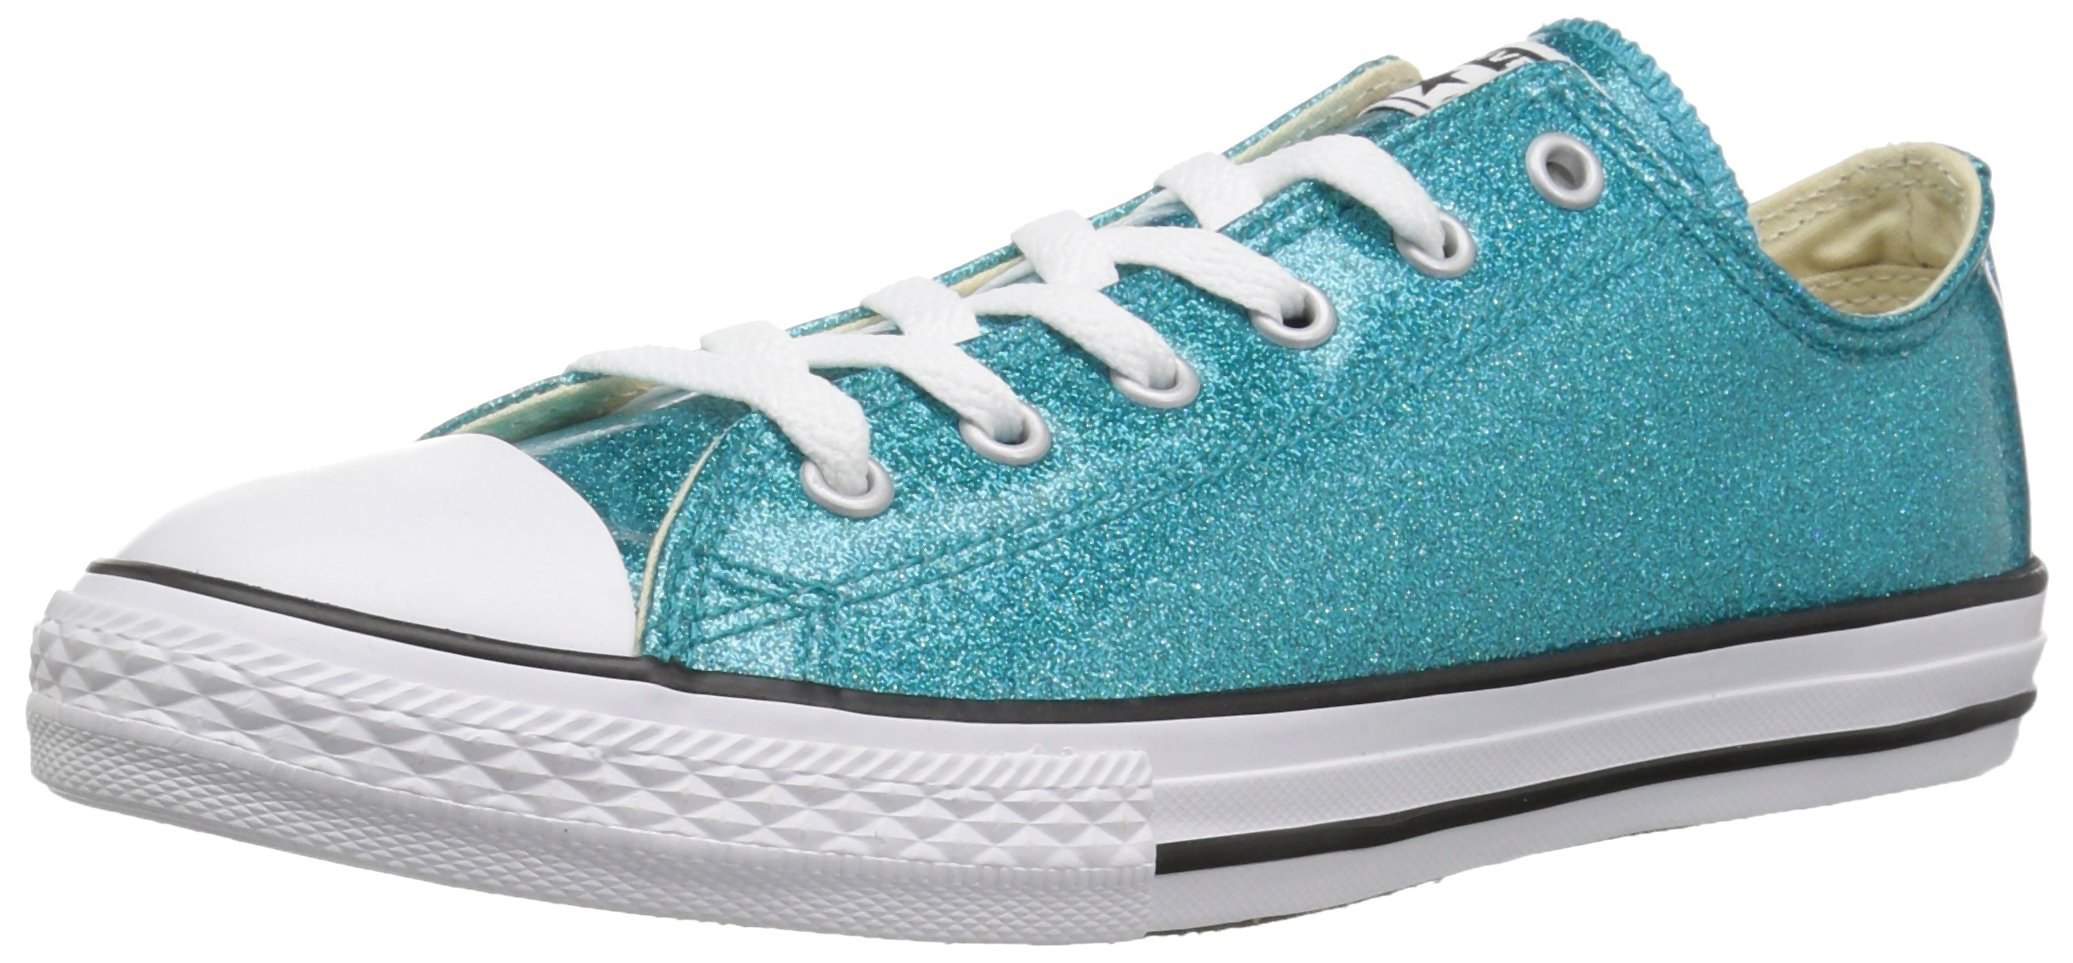 5a185d75f918e ... where to buy converse kids chuck taylor all star glitter low top sneaker  0f362 522f3